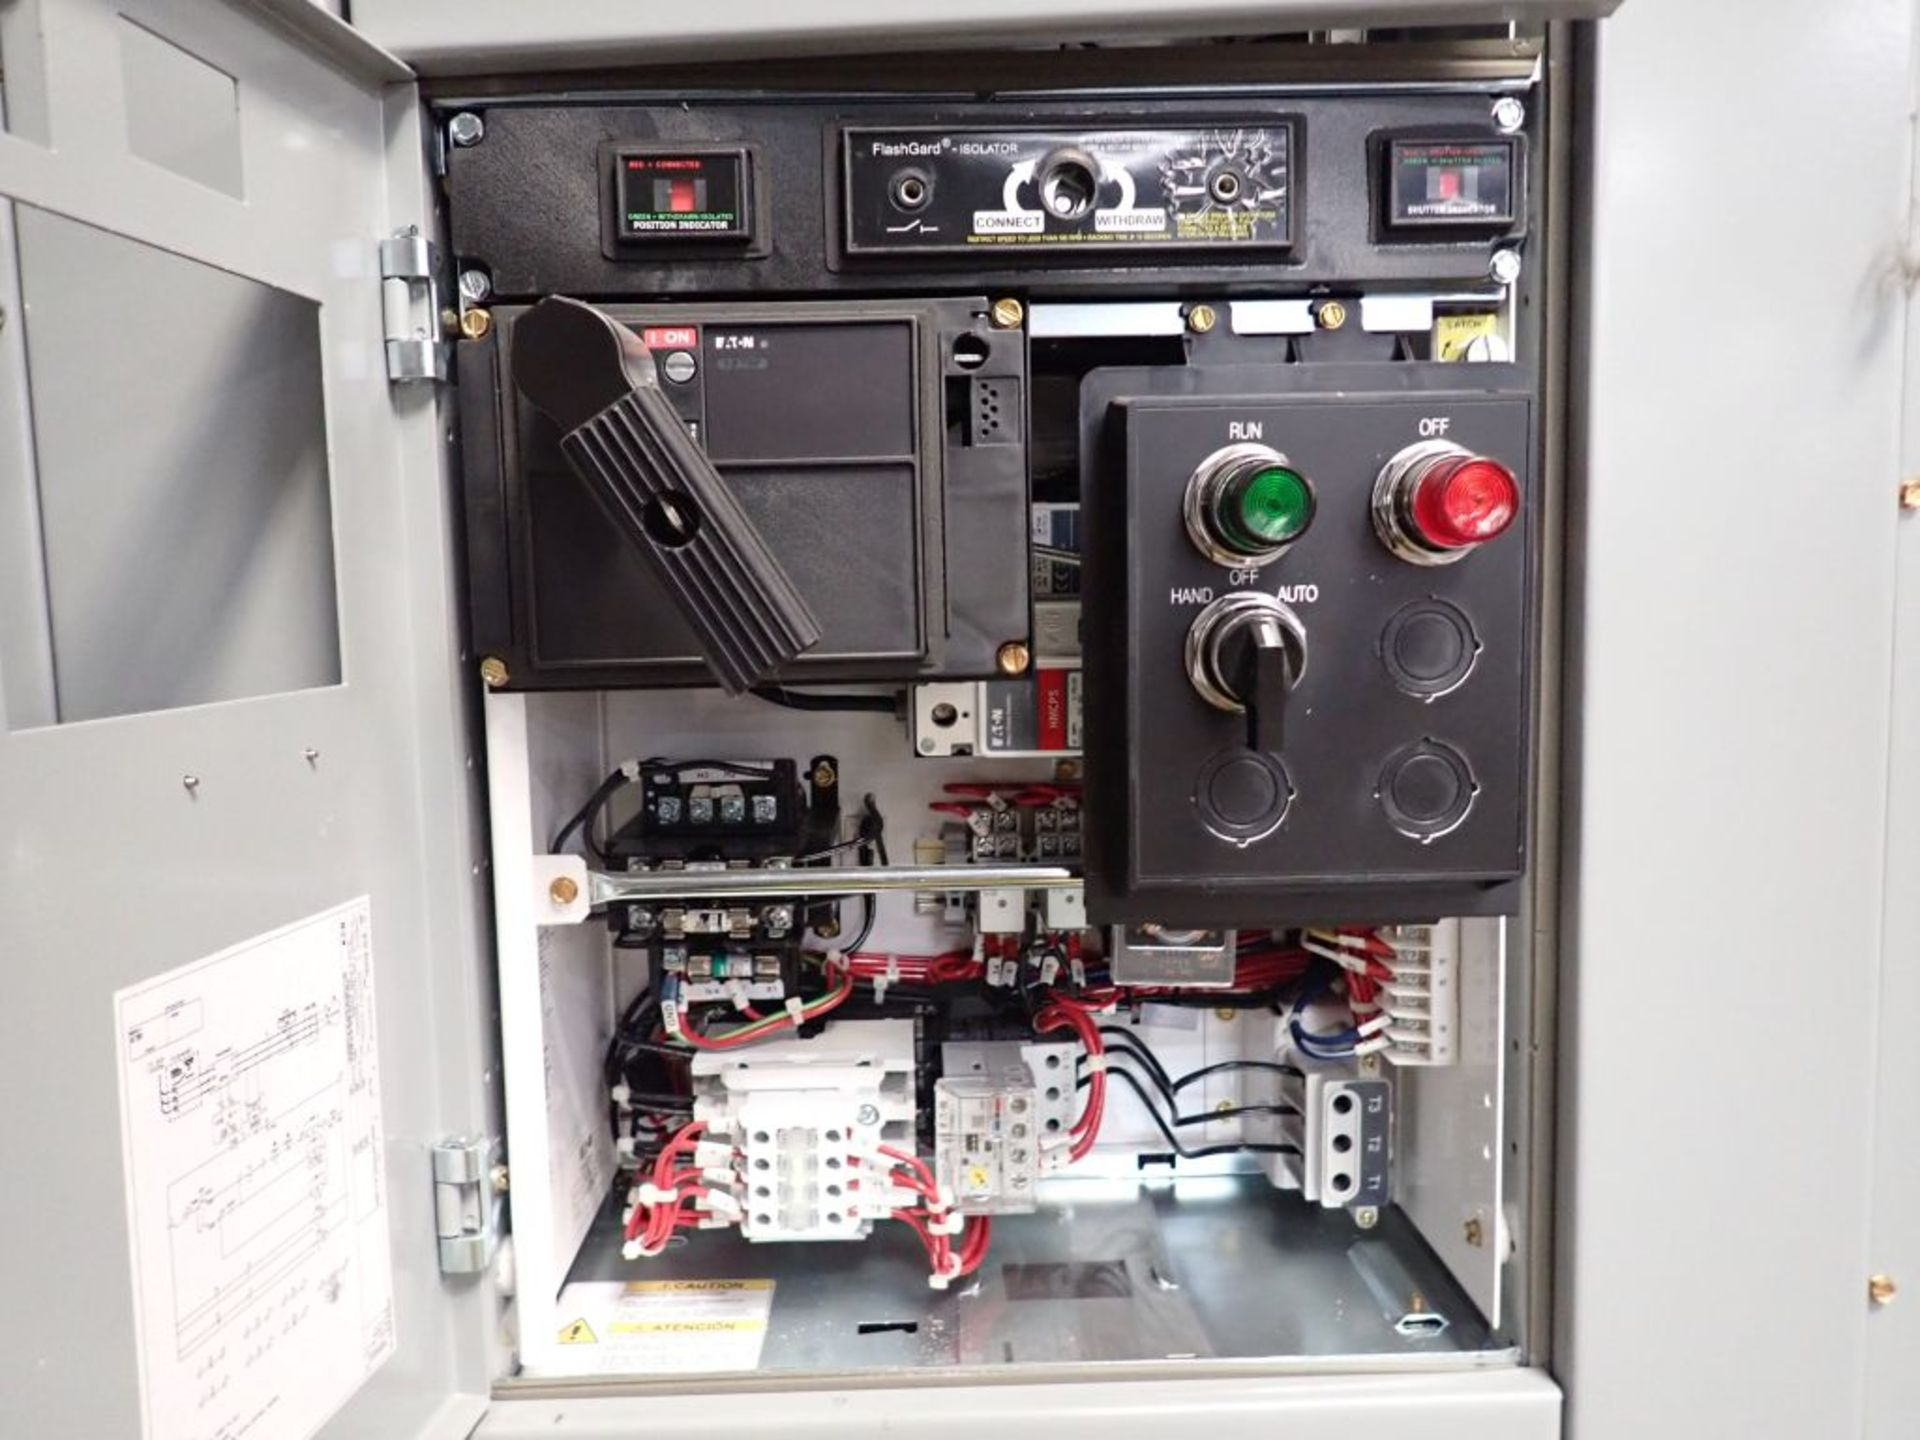 Eaton Freedom 2100 Series Motor Control Center | (11) F206-30A-10HP; (5) F206-15A-10HP; (1) SVX900- - Image 46 of 102